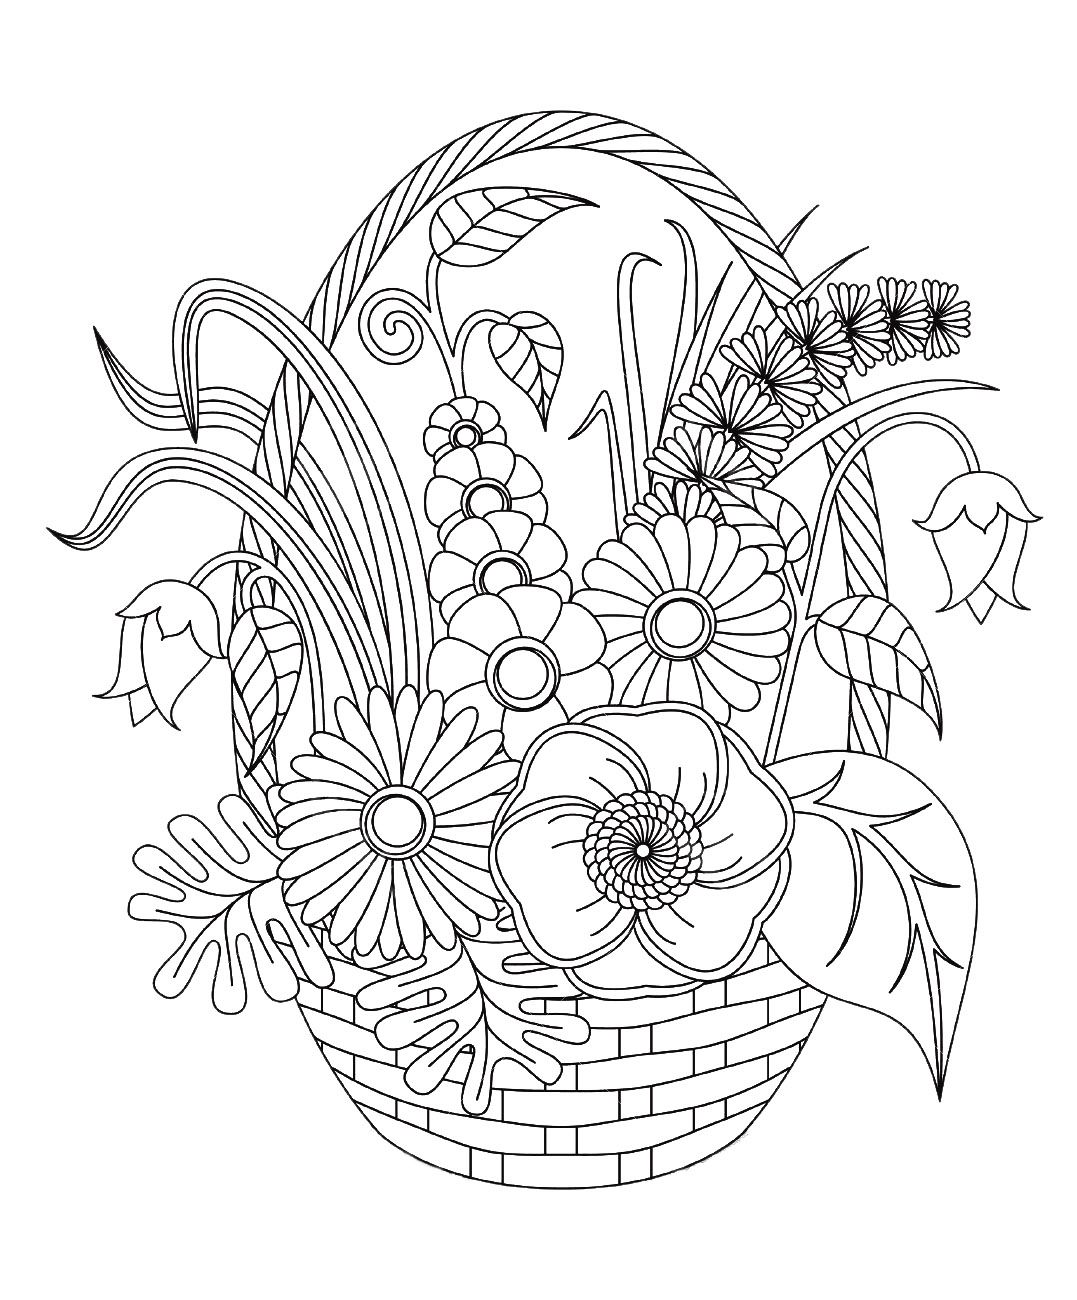 Here Are Coloring Pages Inspired By The Beauties Of Nature Flowers Leaves Lush Many